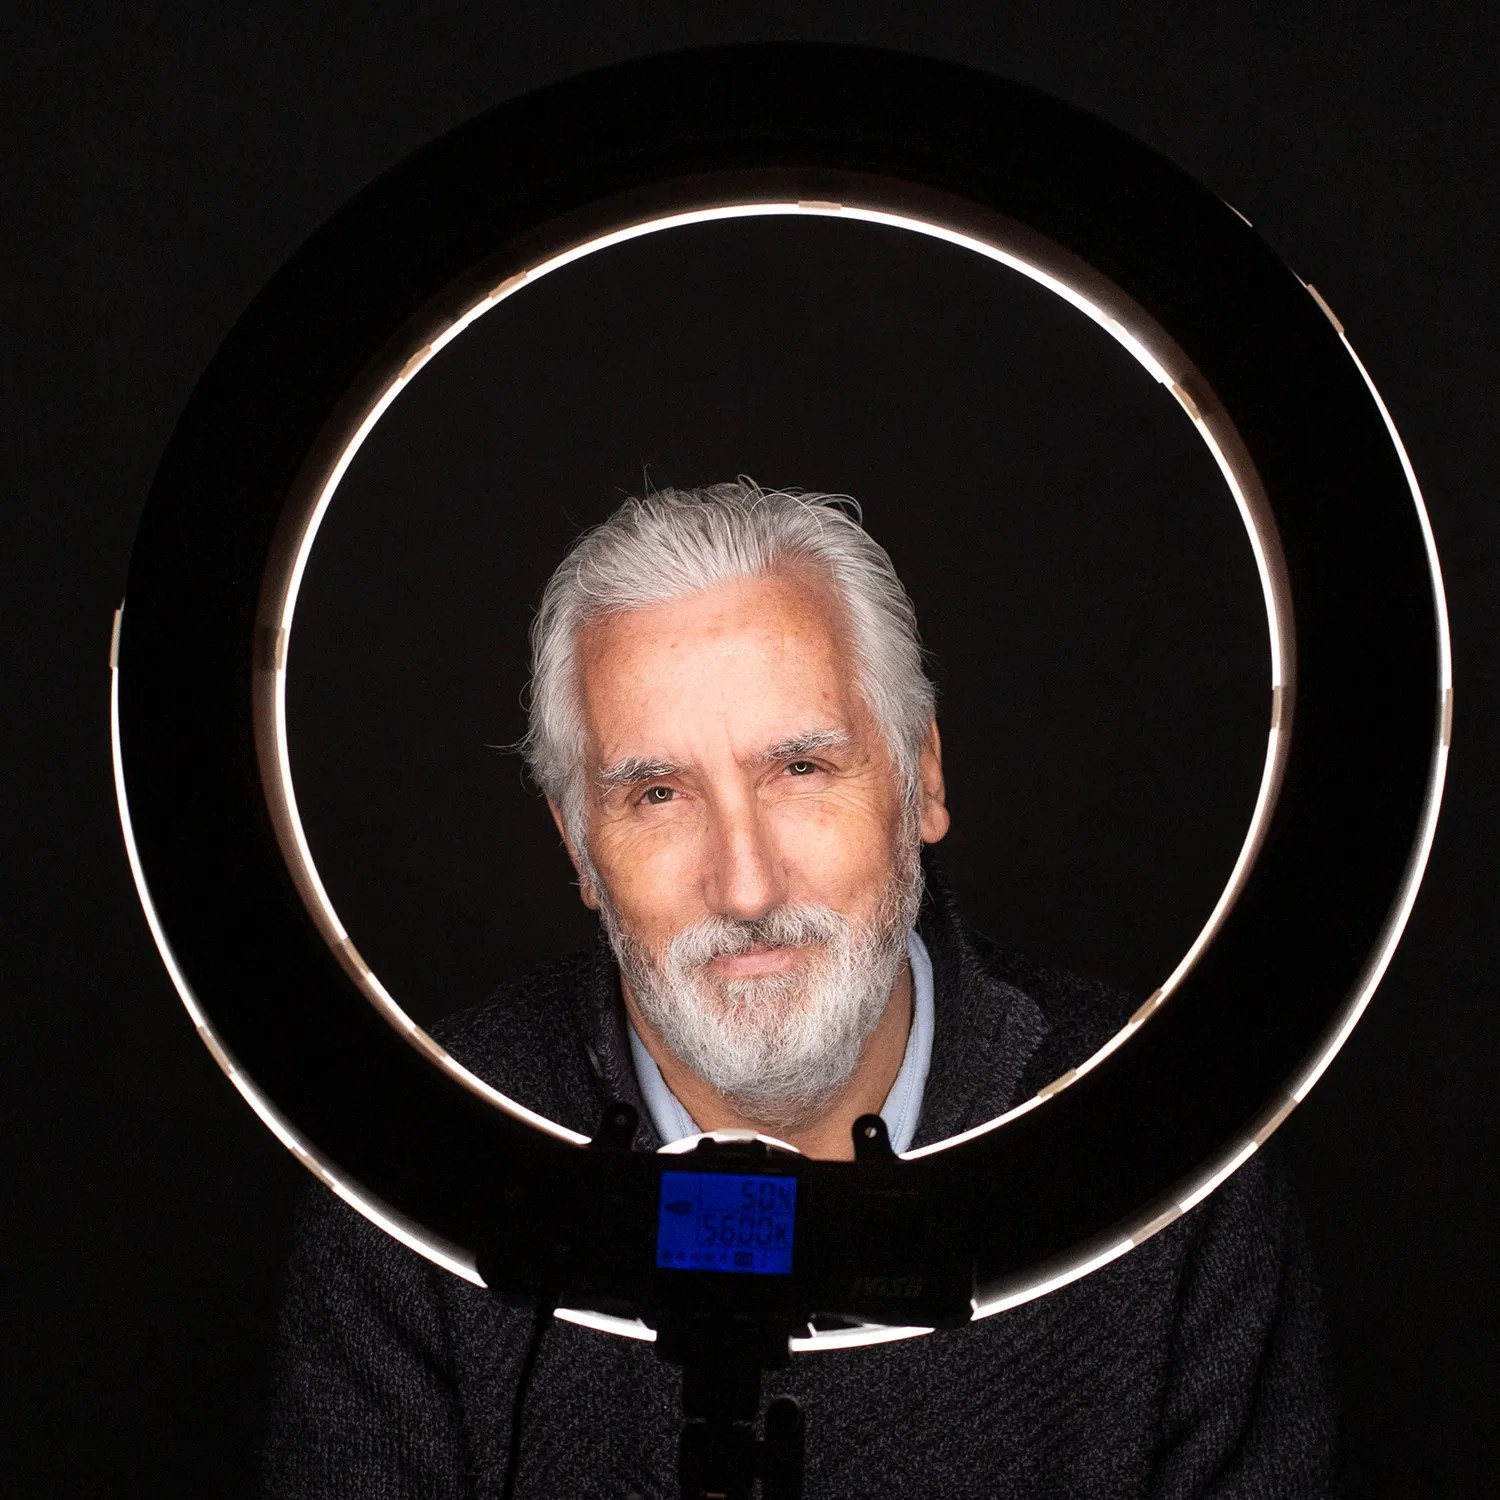 a ring light in action for a portrait